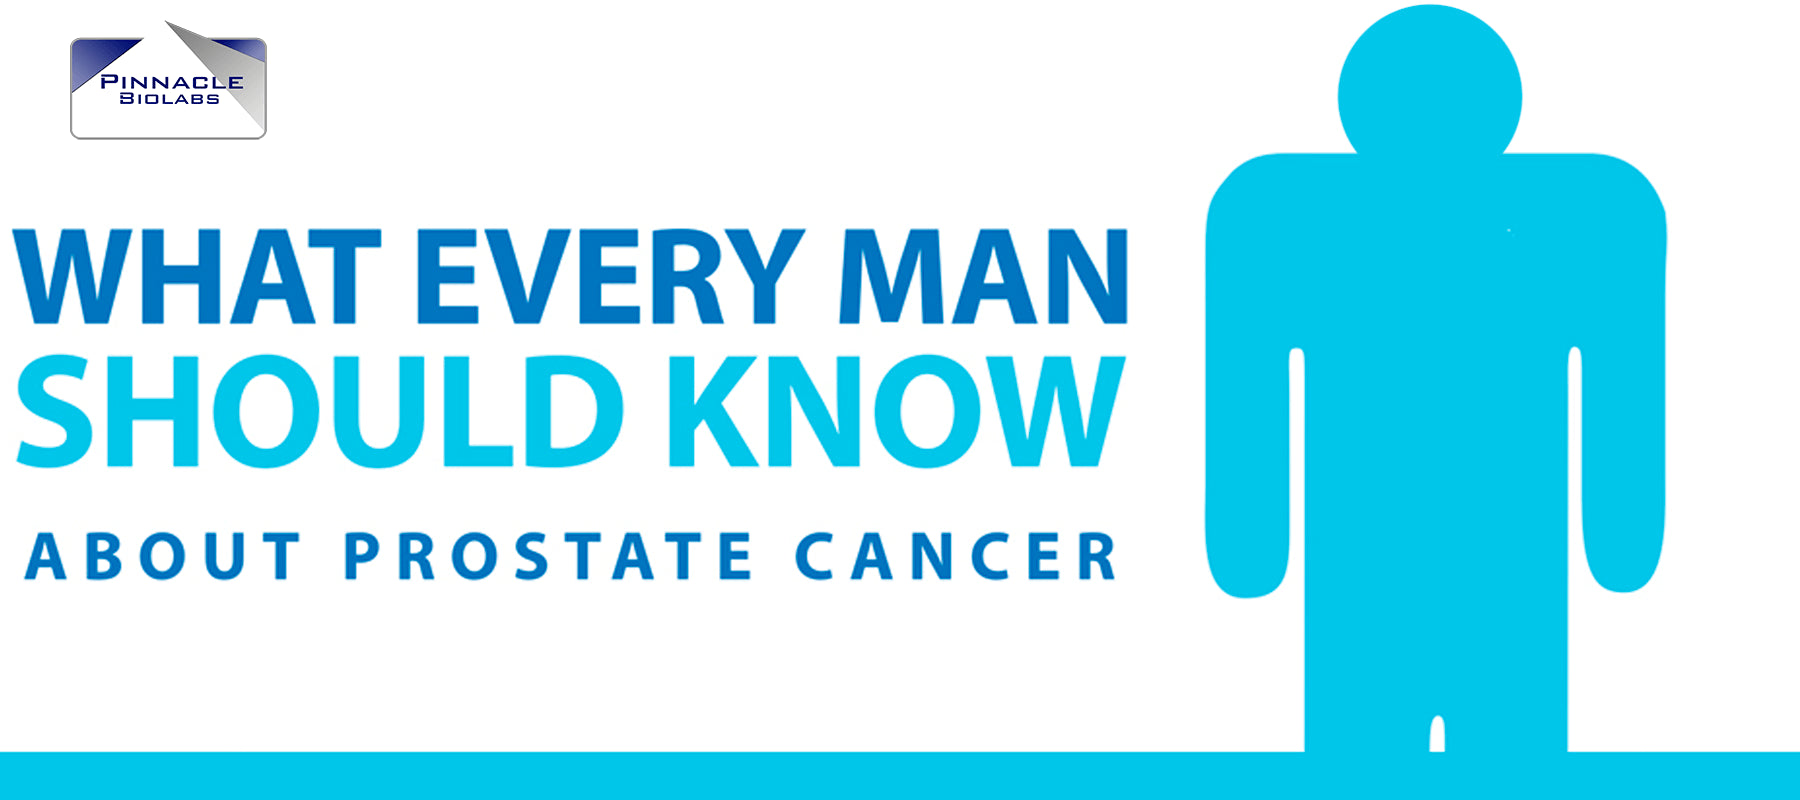 Prostate Cancer and the Role of the PSA Test - Pinnacle BioLabs